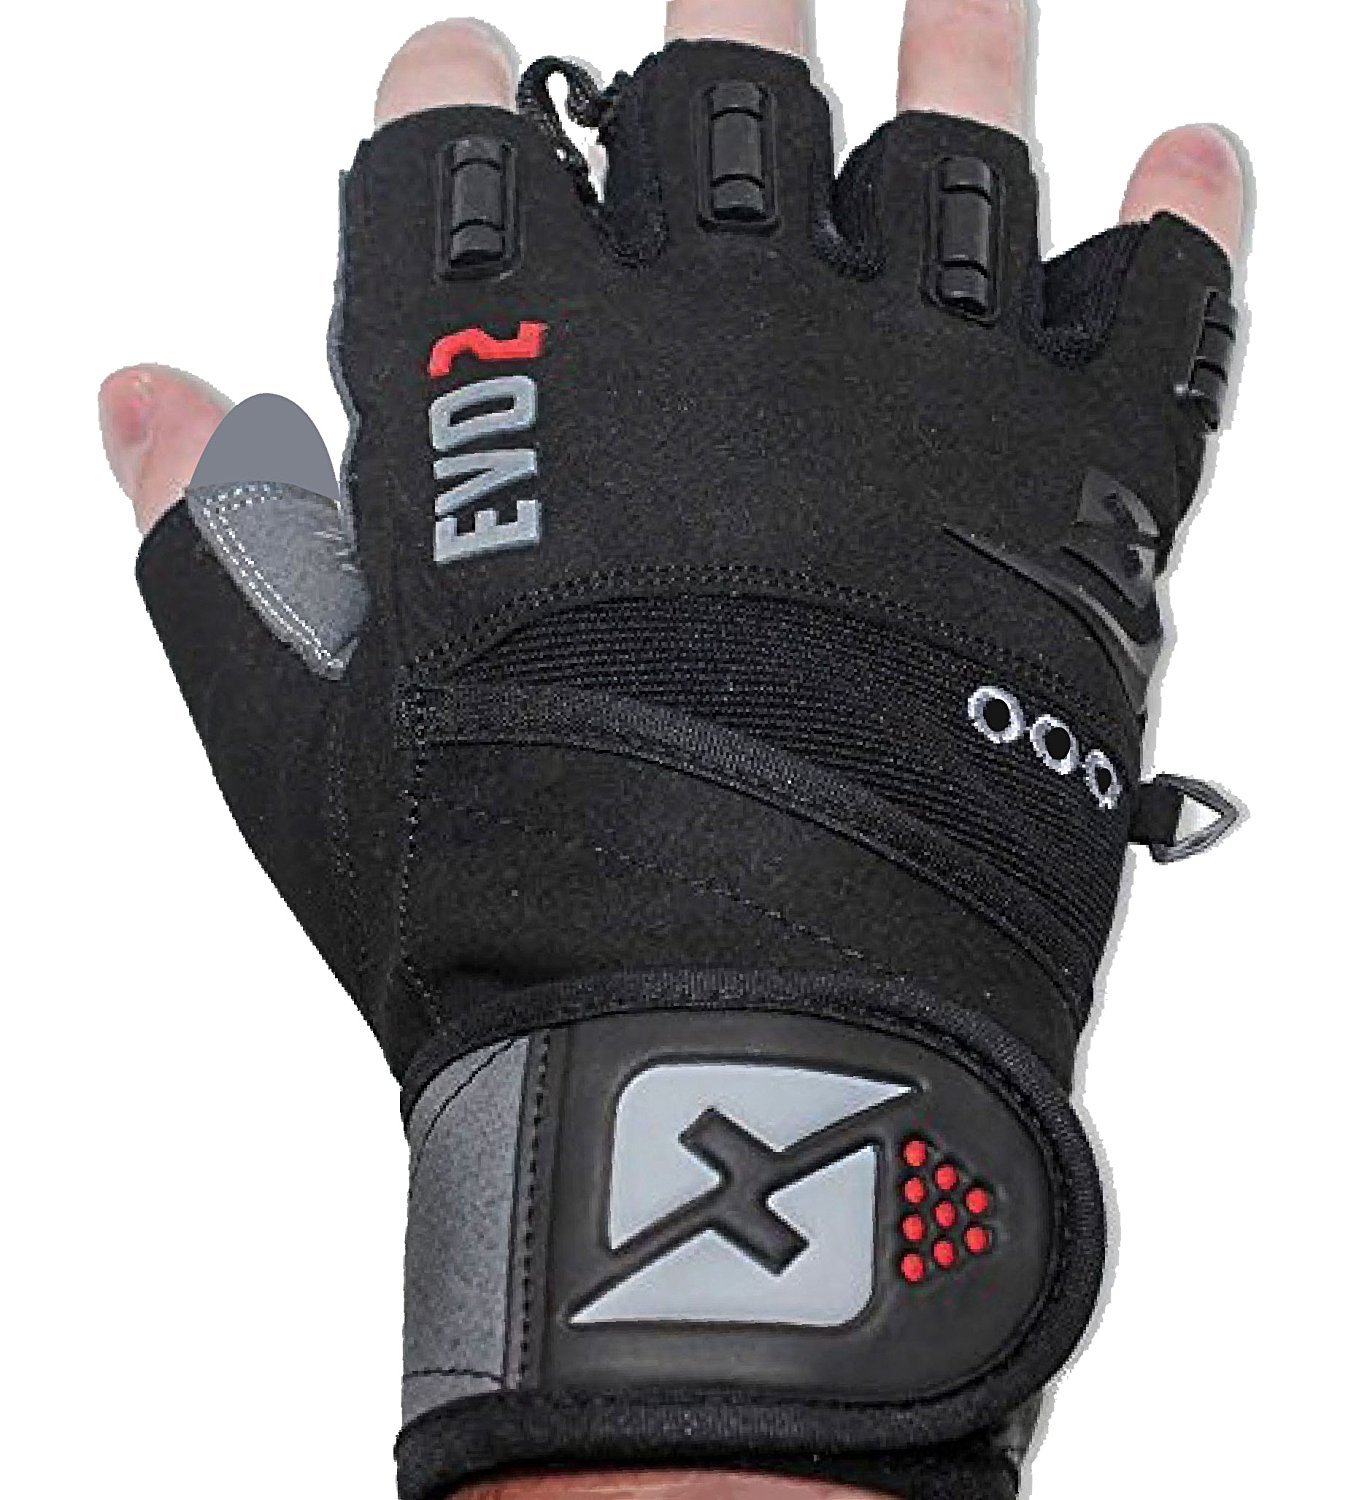 skott 2019 Evo 2 Weightlifting Gloves with Integrated Wrist Wrap Support-Double Stitching for Extra Durability-Get Ripped with The Best Body Building Fitness and Exercise Accessories (Small)